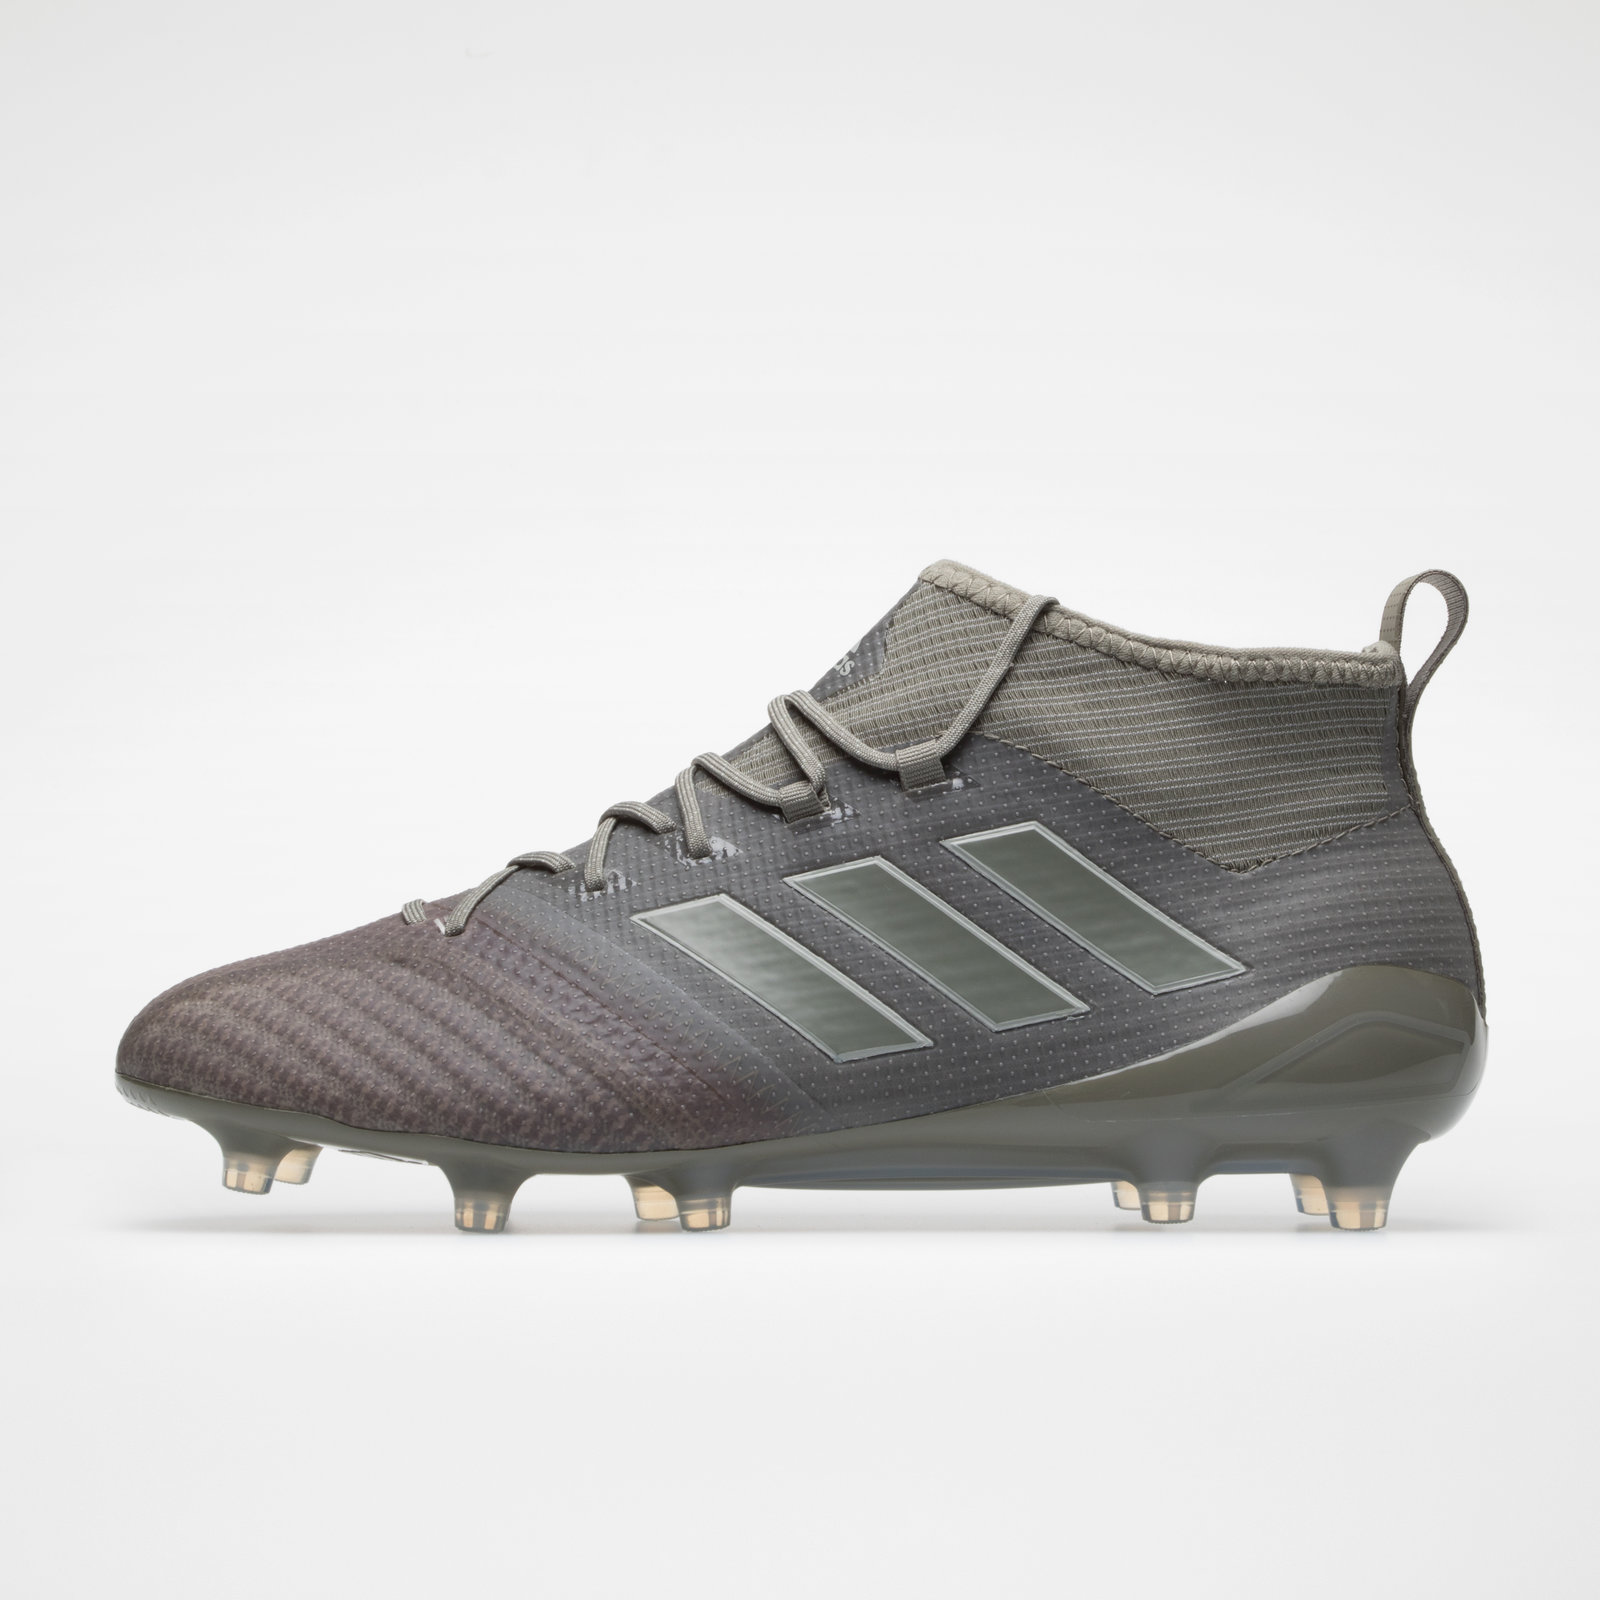 Image of Ace 17.1 FG Football Boots